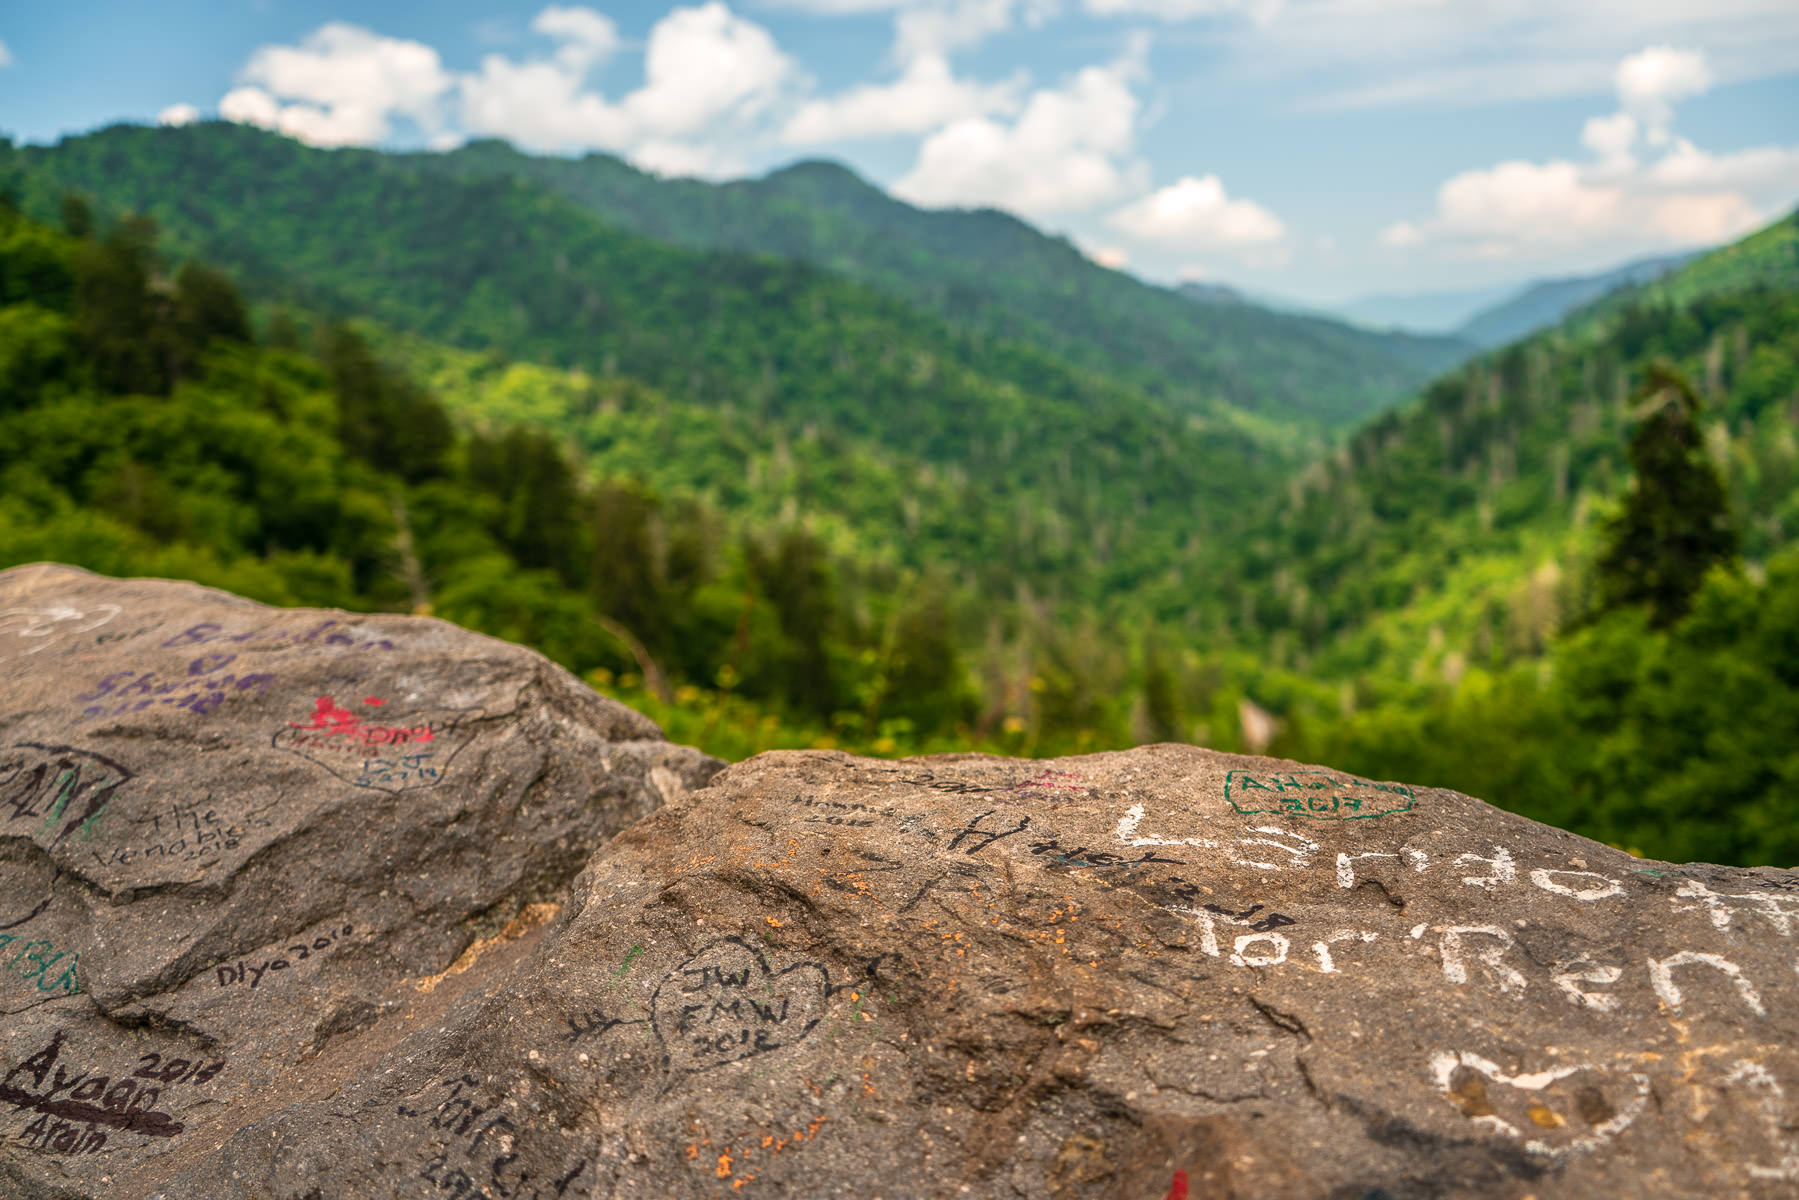 Graffiti-adorned rocks make up part of a retaining wall at a scenic overlook in Tennessee's Great Smoky Mountains National Park.